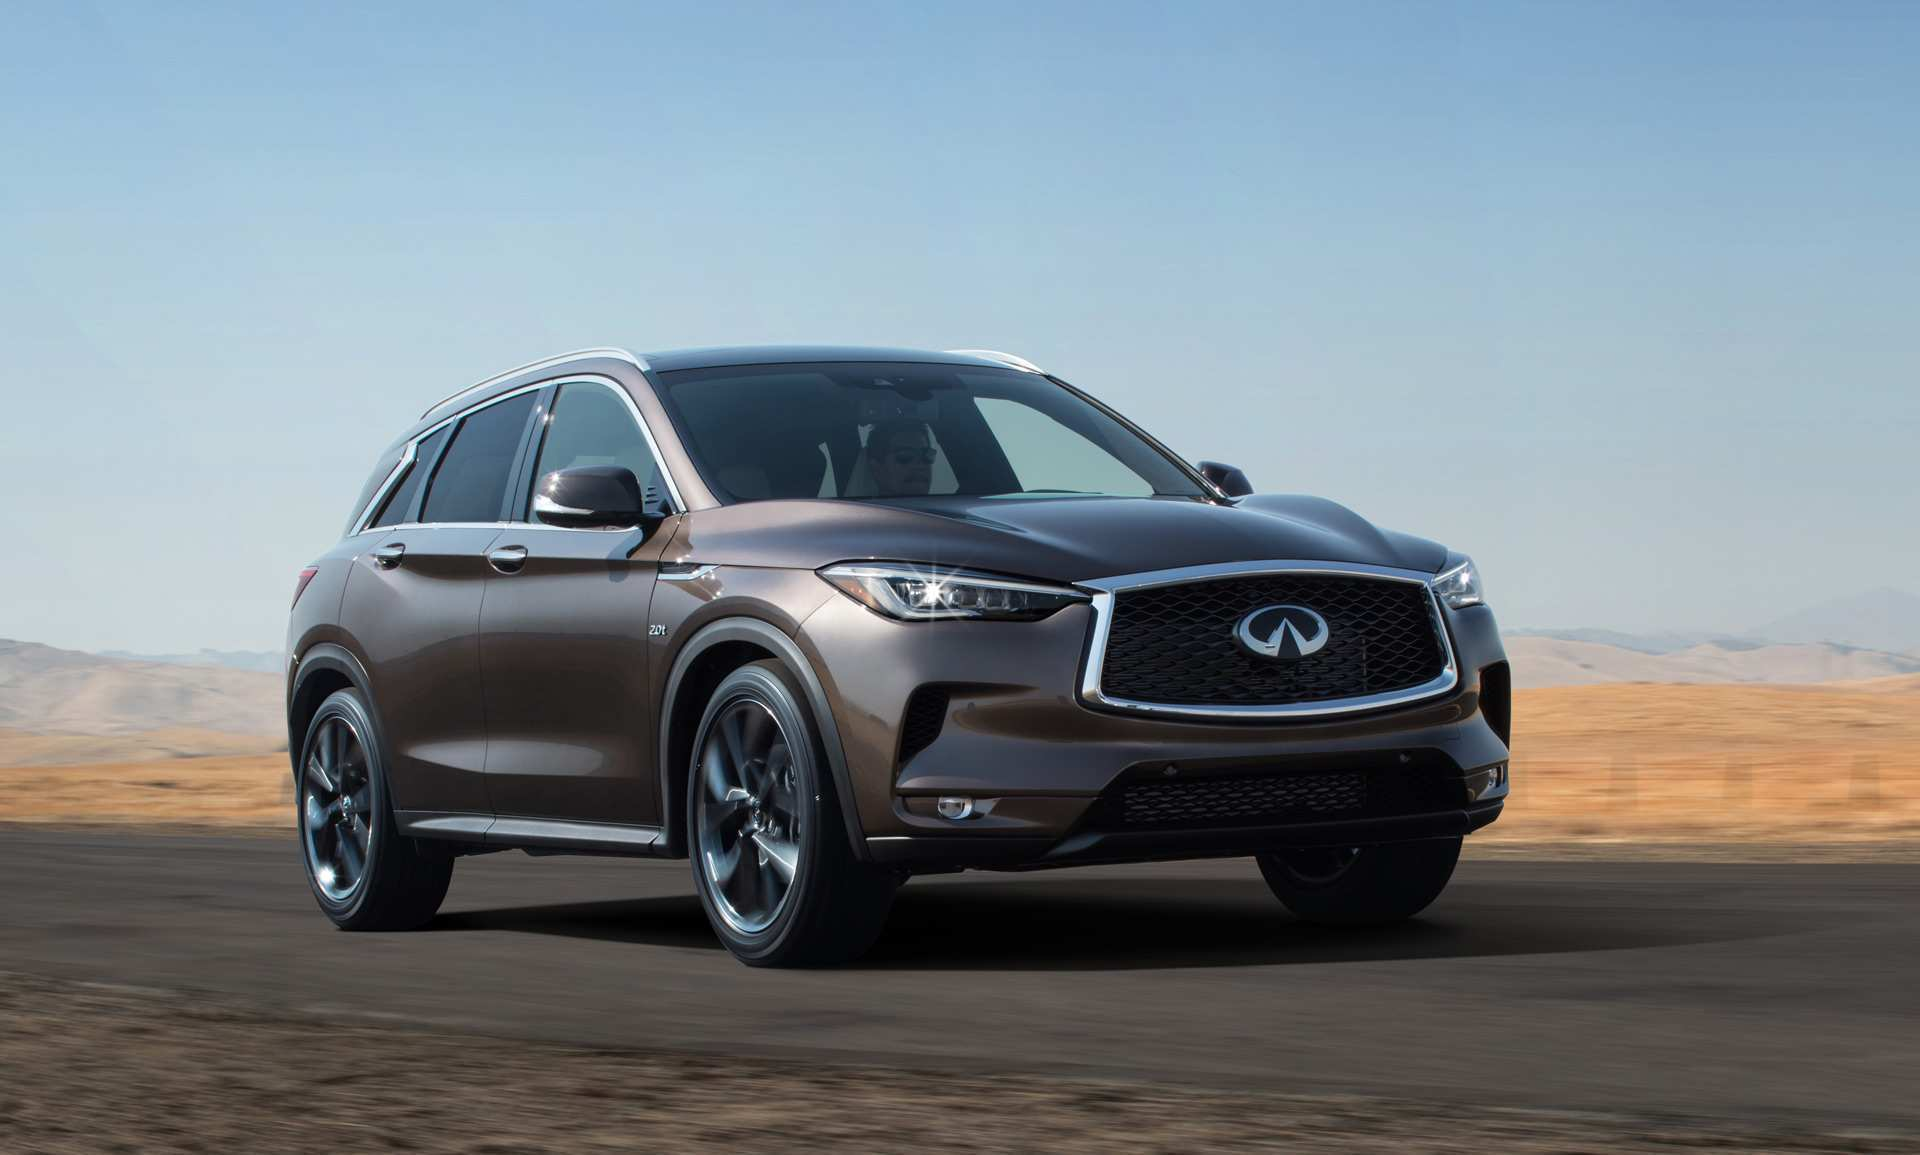 95 The Infiniti Qx50 2019 Images Overview And Price Review with Infiniti Qx50 2019 Images Overview And Price